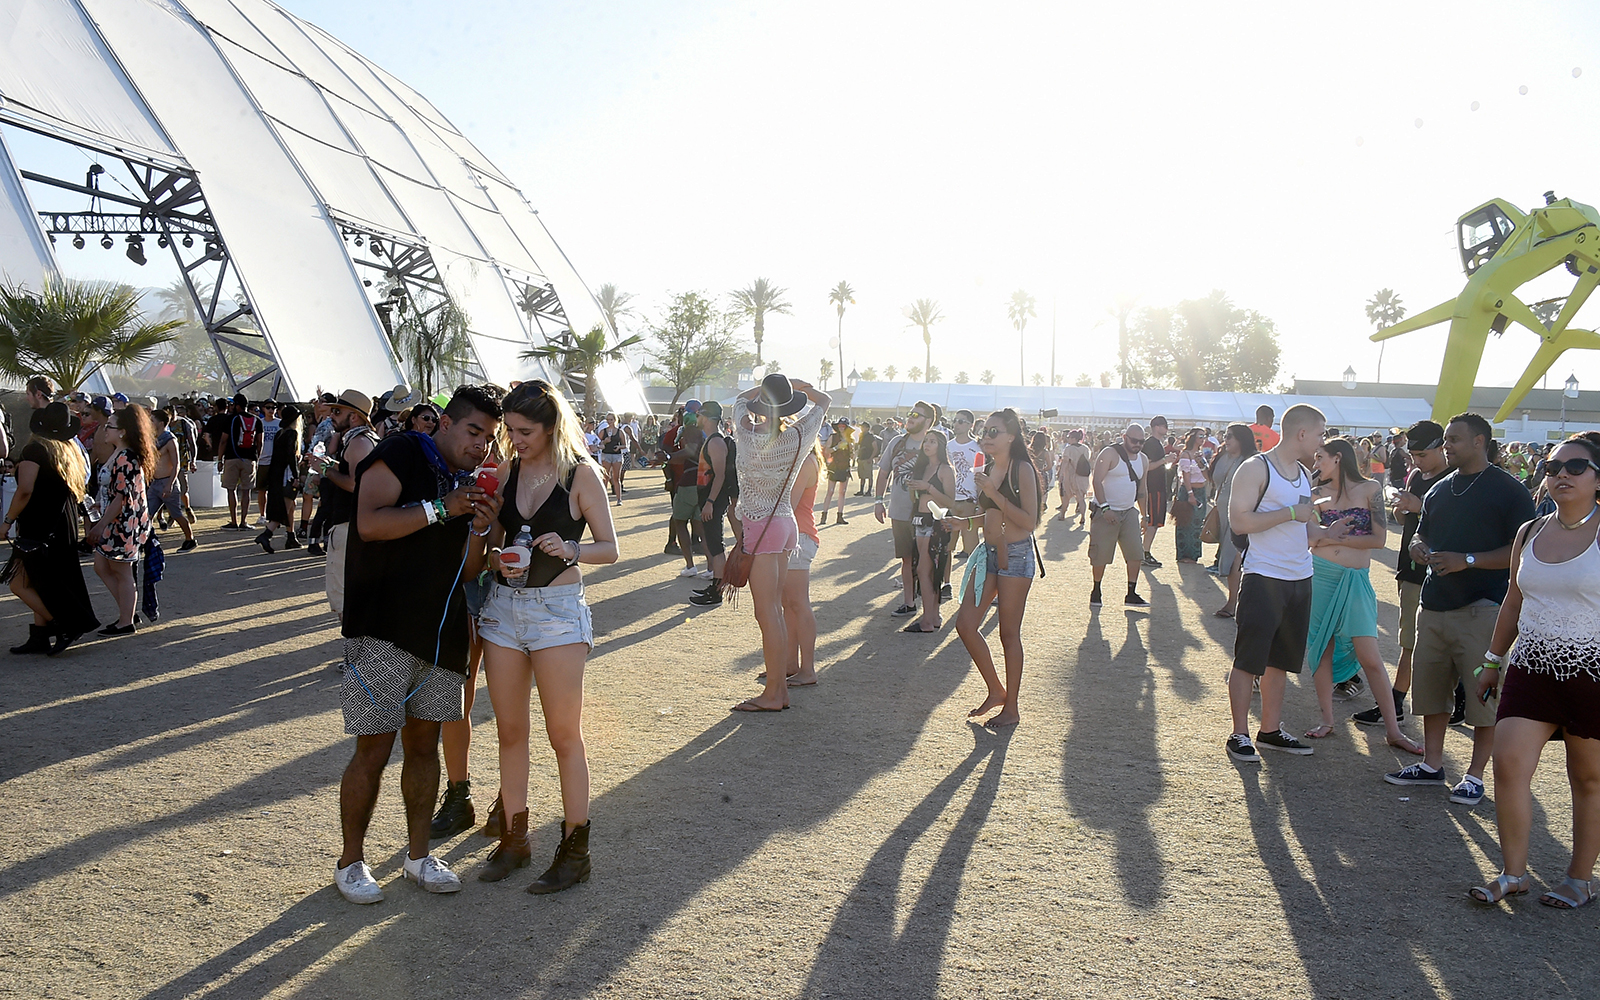 How to Find a Music Festival Anywhere You Travel